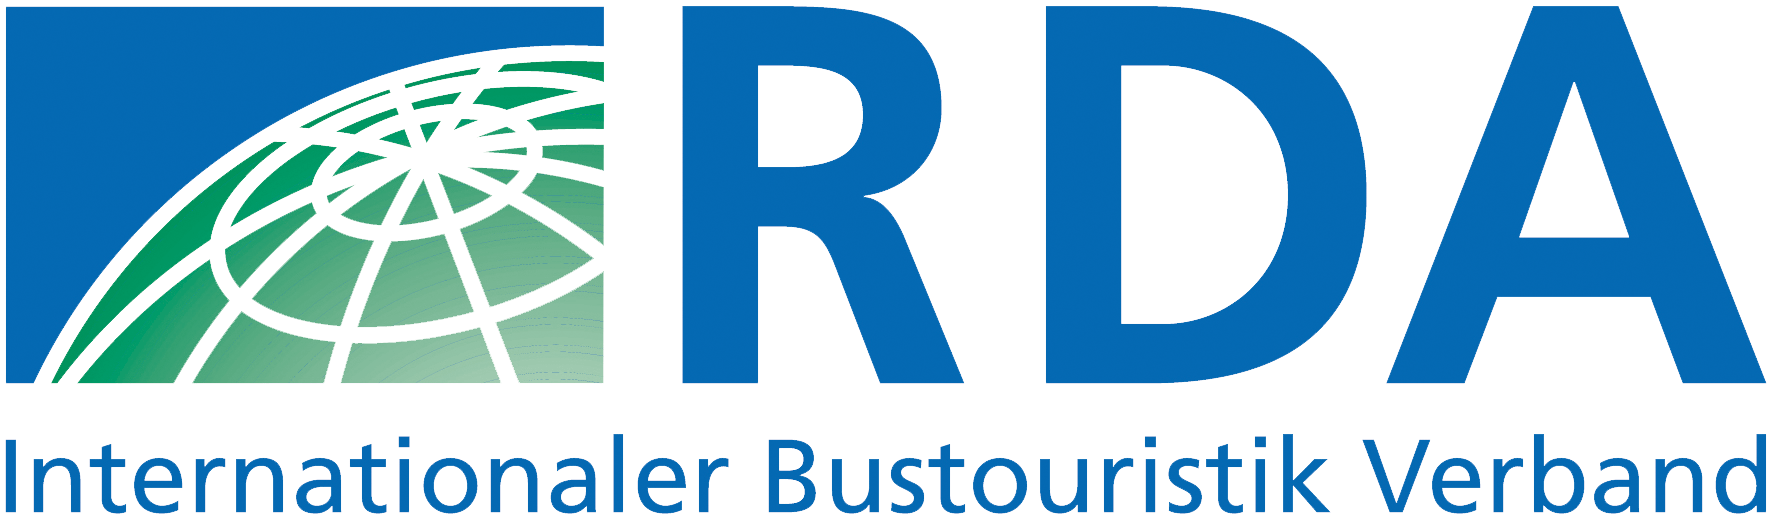 Internationaler Bustouristik Verband